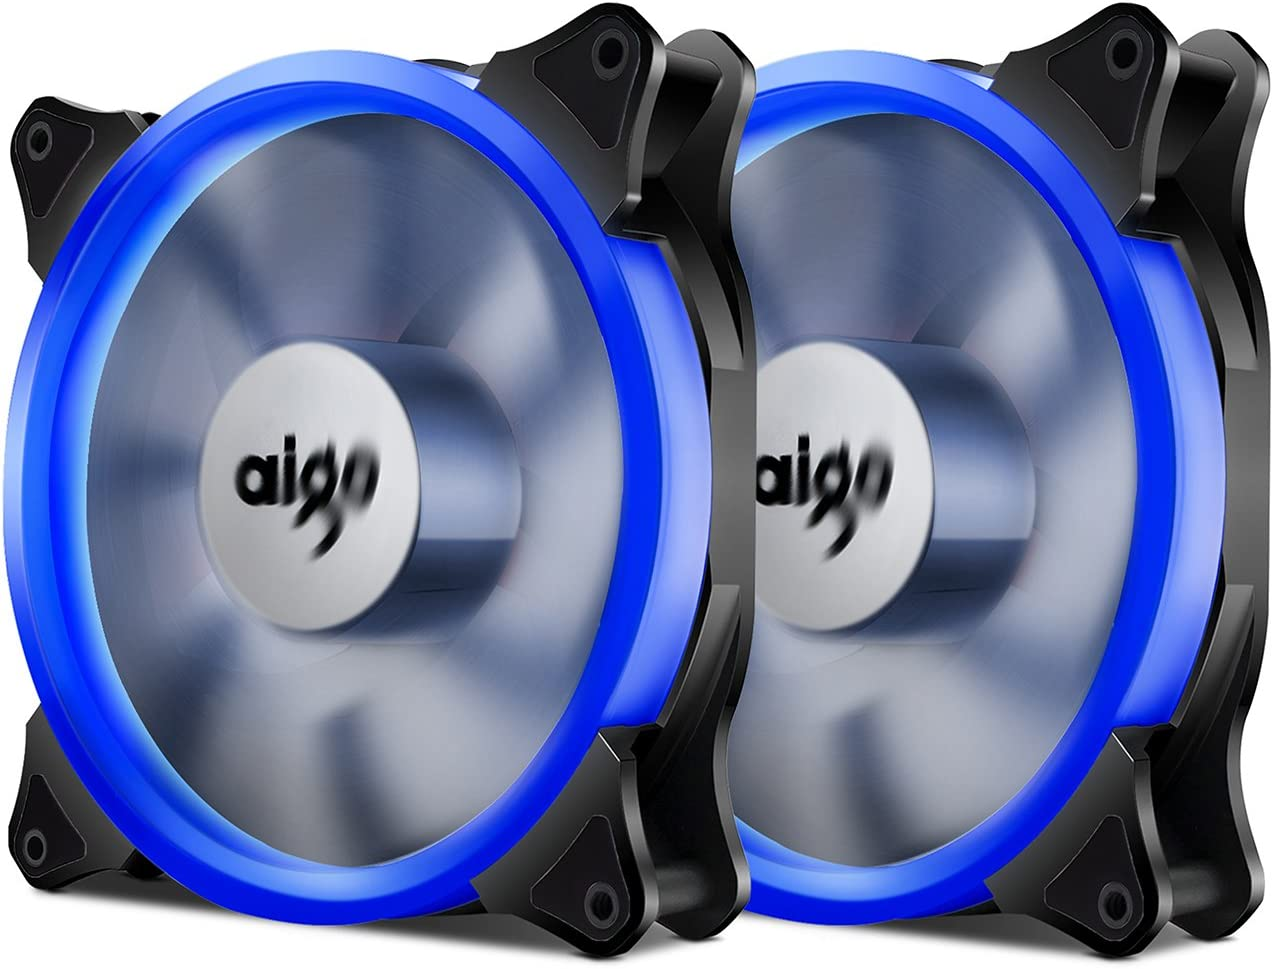 Aigo Halo Ring Fan LED 140mm PC CPU Computer Case Cooling Neon Quite Clear Fan Mod 4 Pin/3 Pin (140mm, 2 Pack Blue)